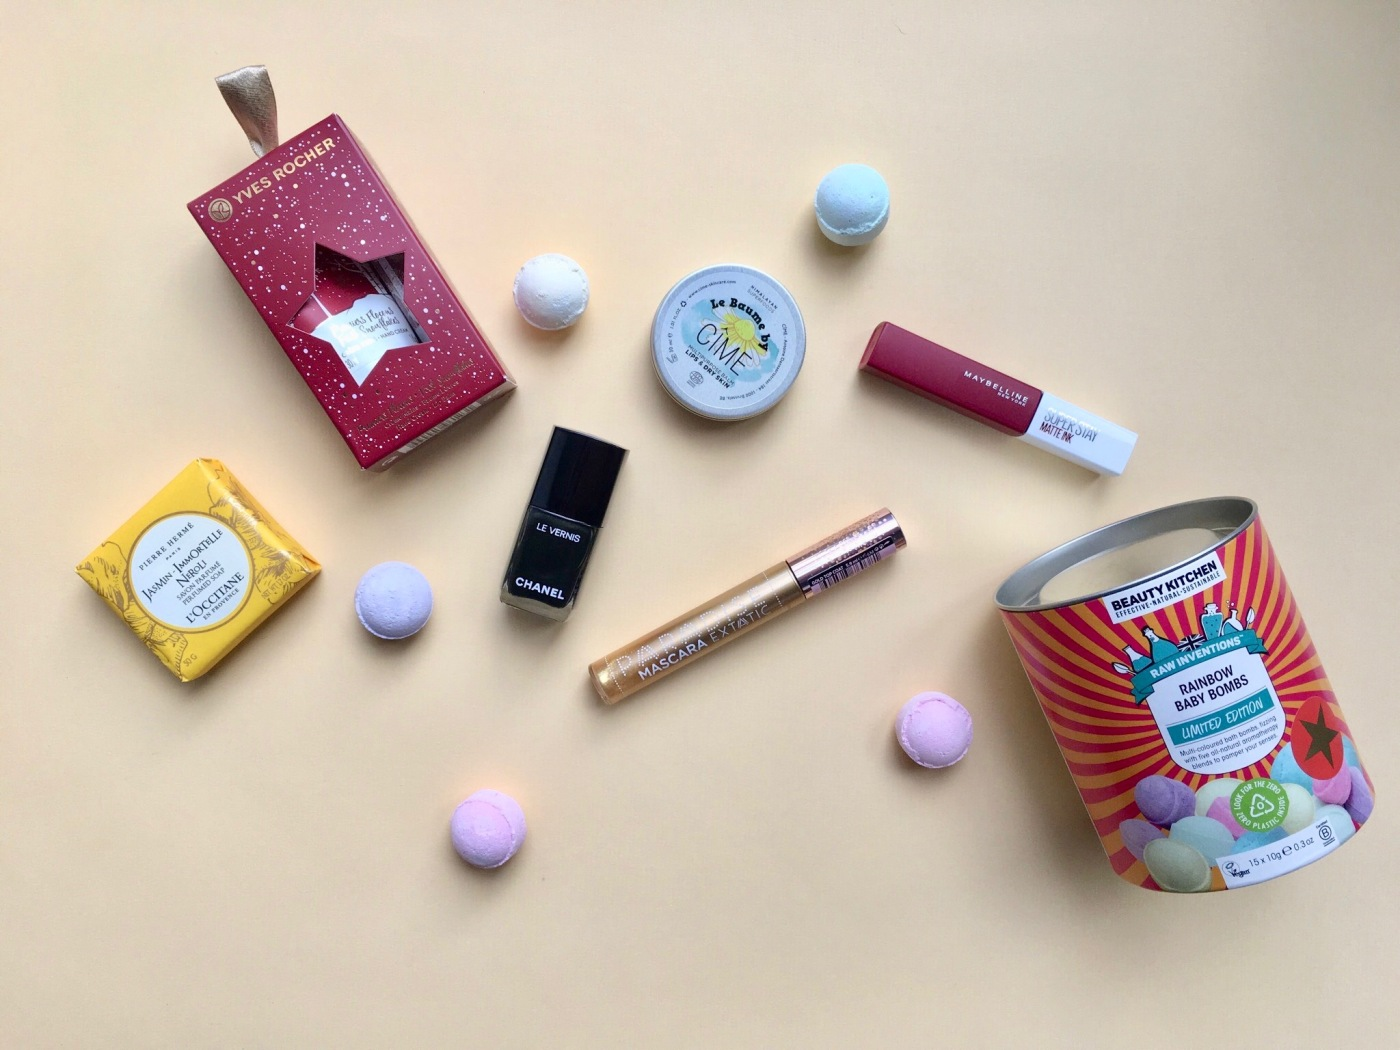 rainbow baby bombs beauty kitchen le baume by cîme le vernis chanel pierre hermé l'occitane maybelline superstay matte ink l'oréal paris paradise extatic mascara